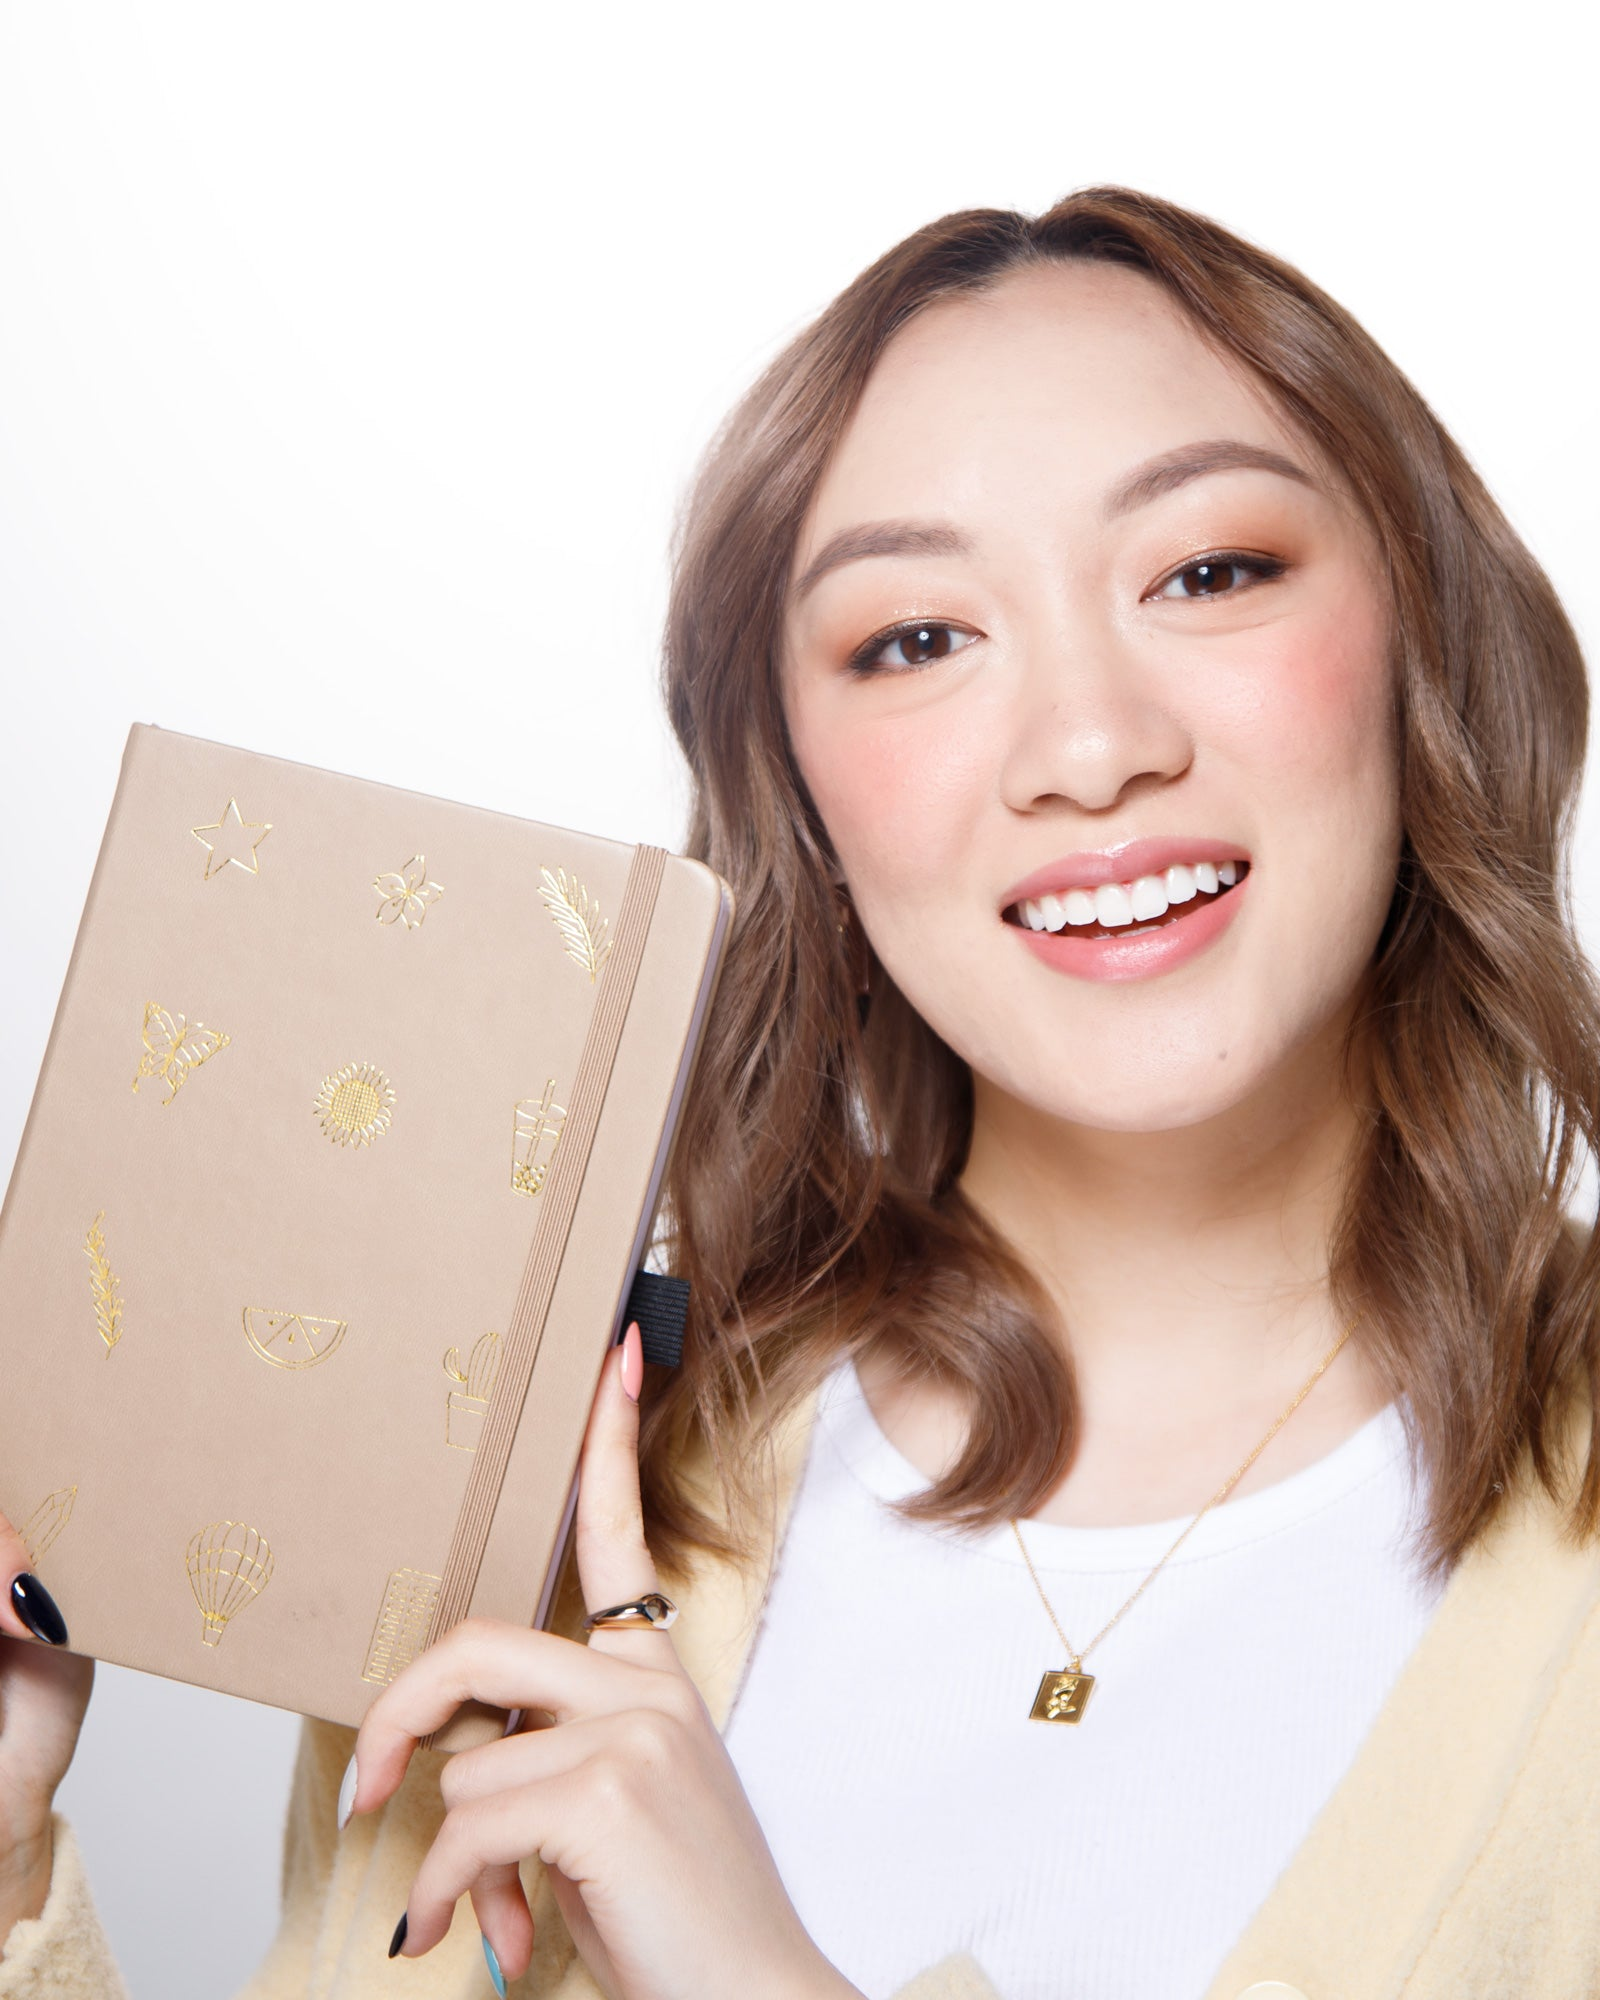 Amanda Rach Lee sitting smiling holding up a planner